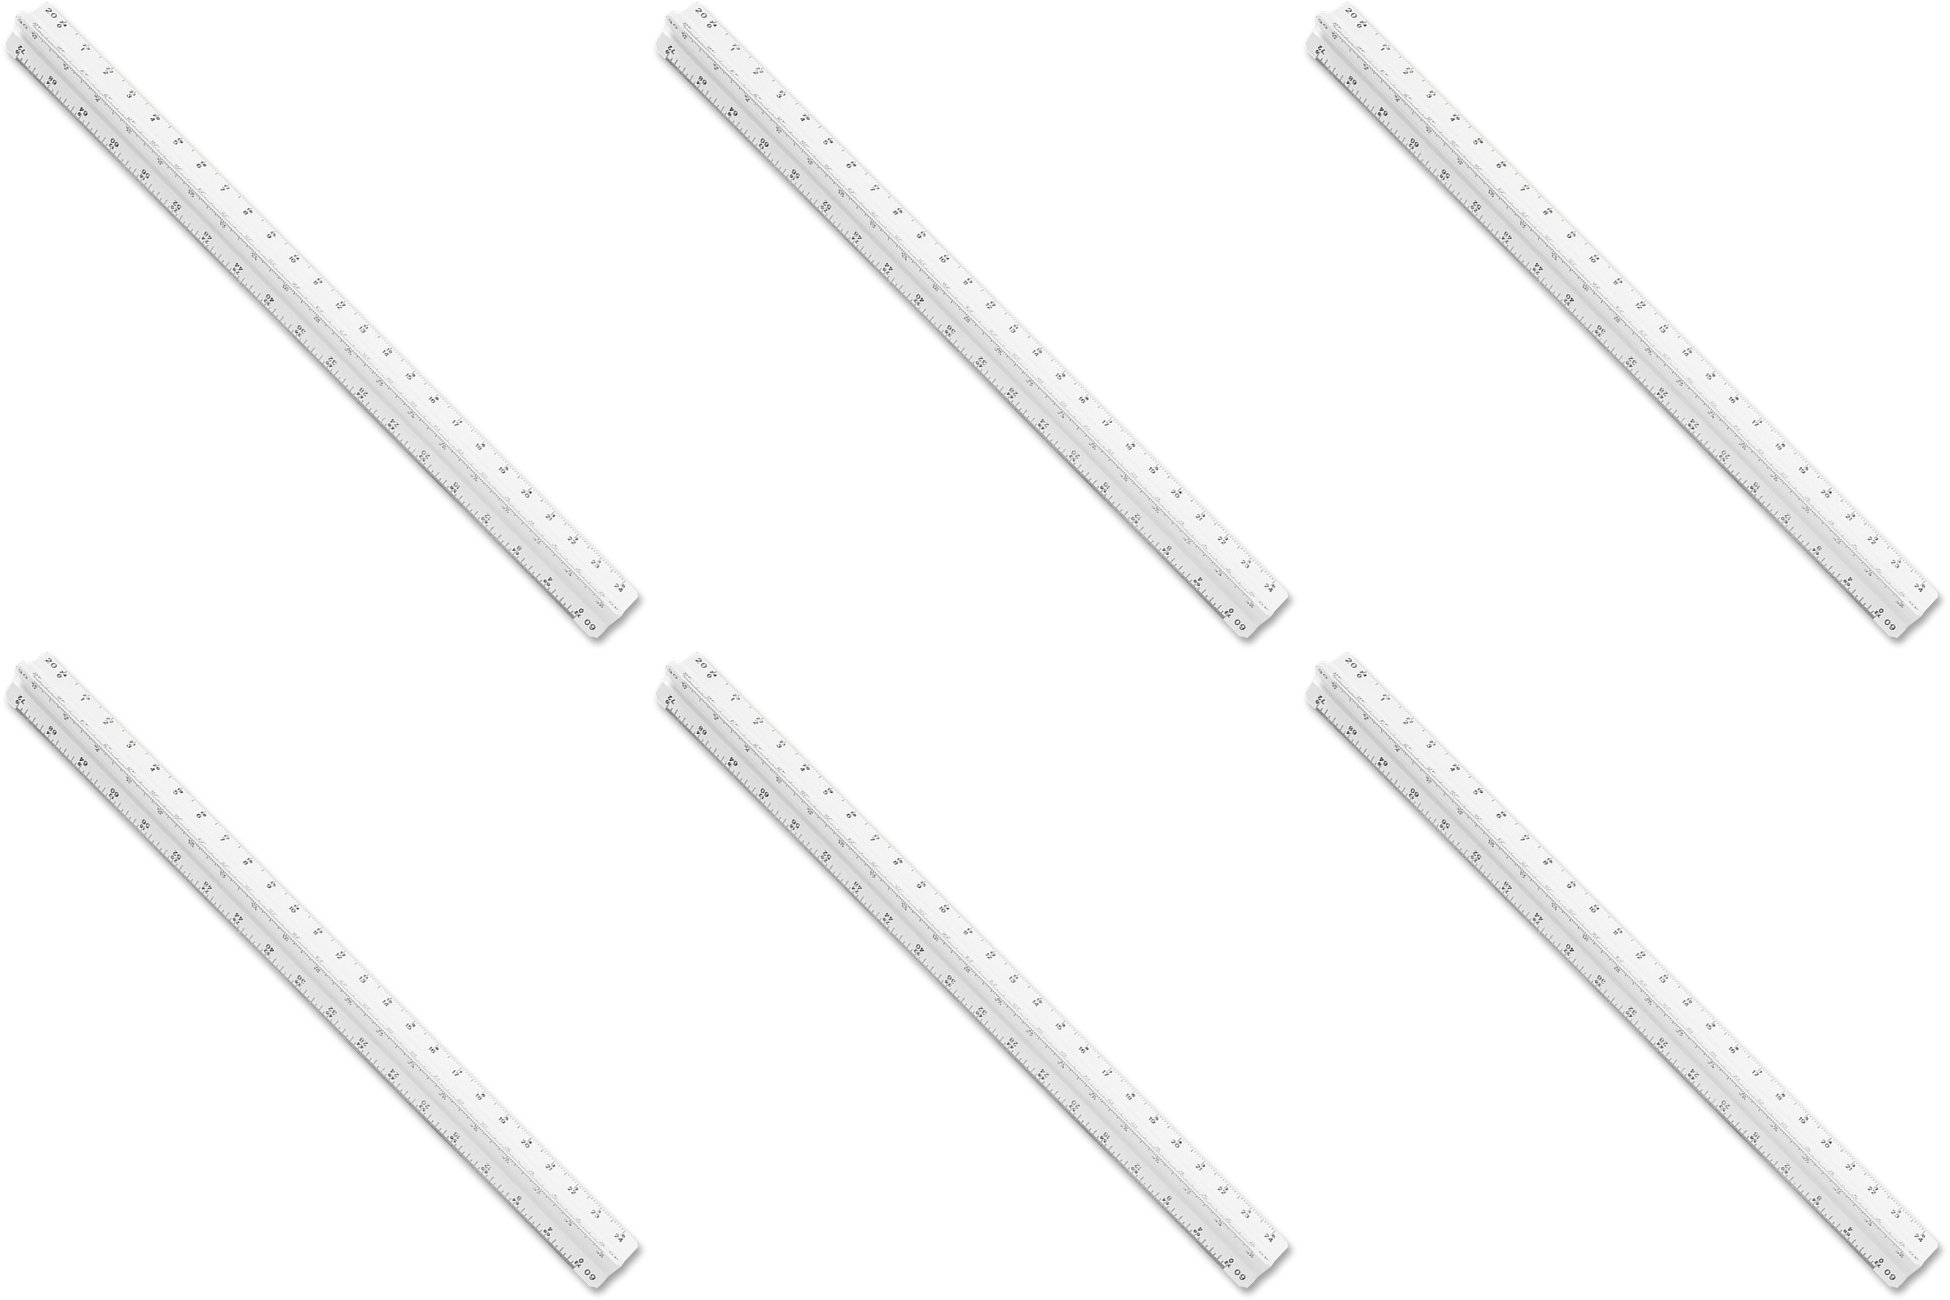 Staedtler(R) Architects Printed Scale, 6 Packs by Staedtler (Image #1)